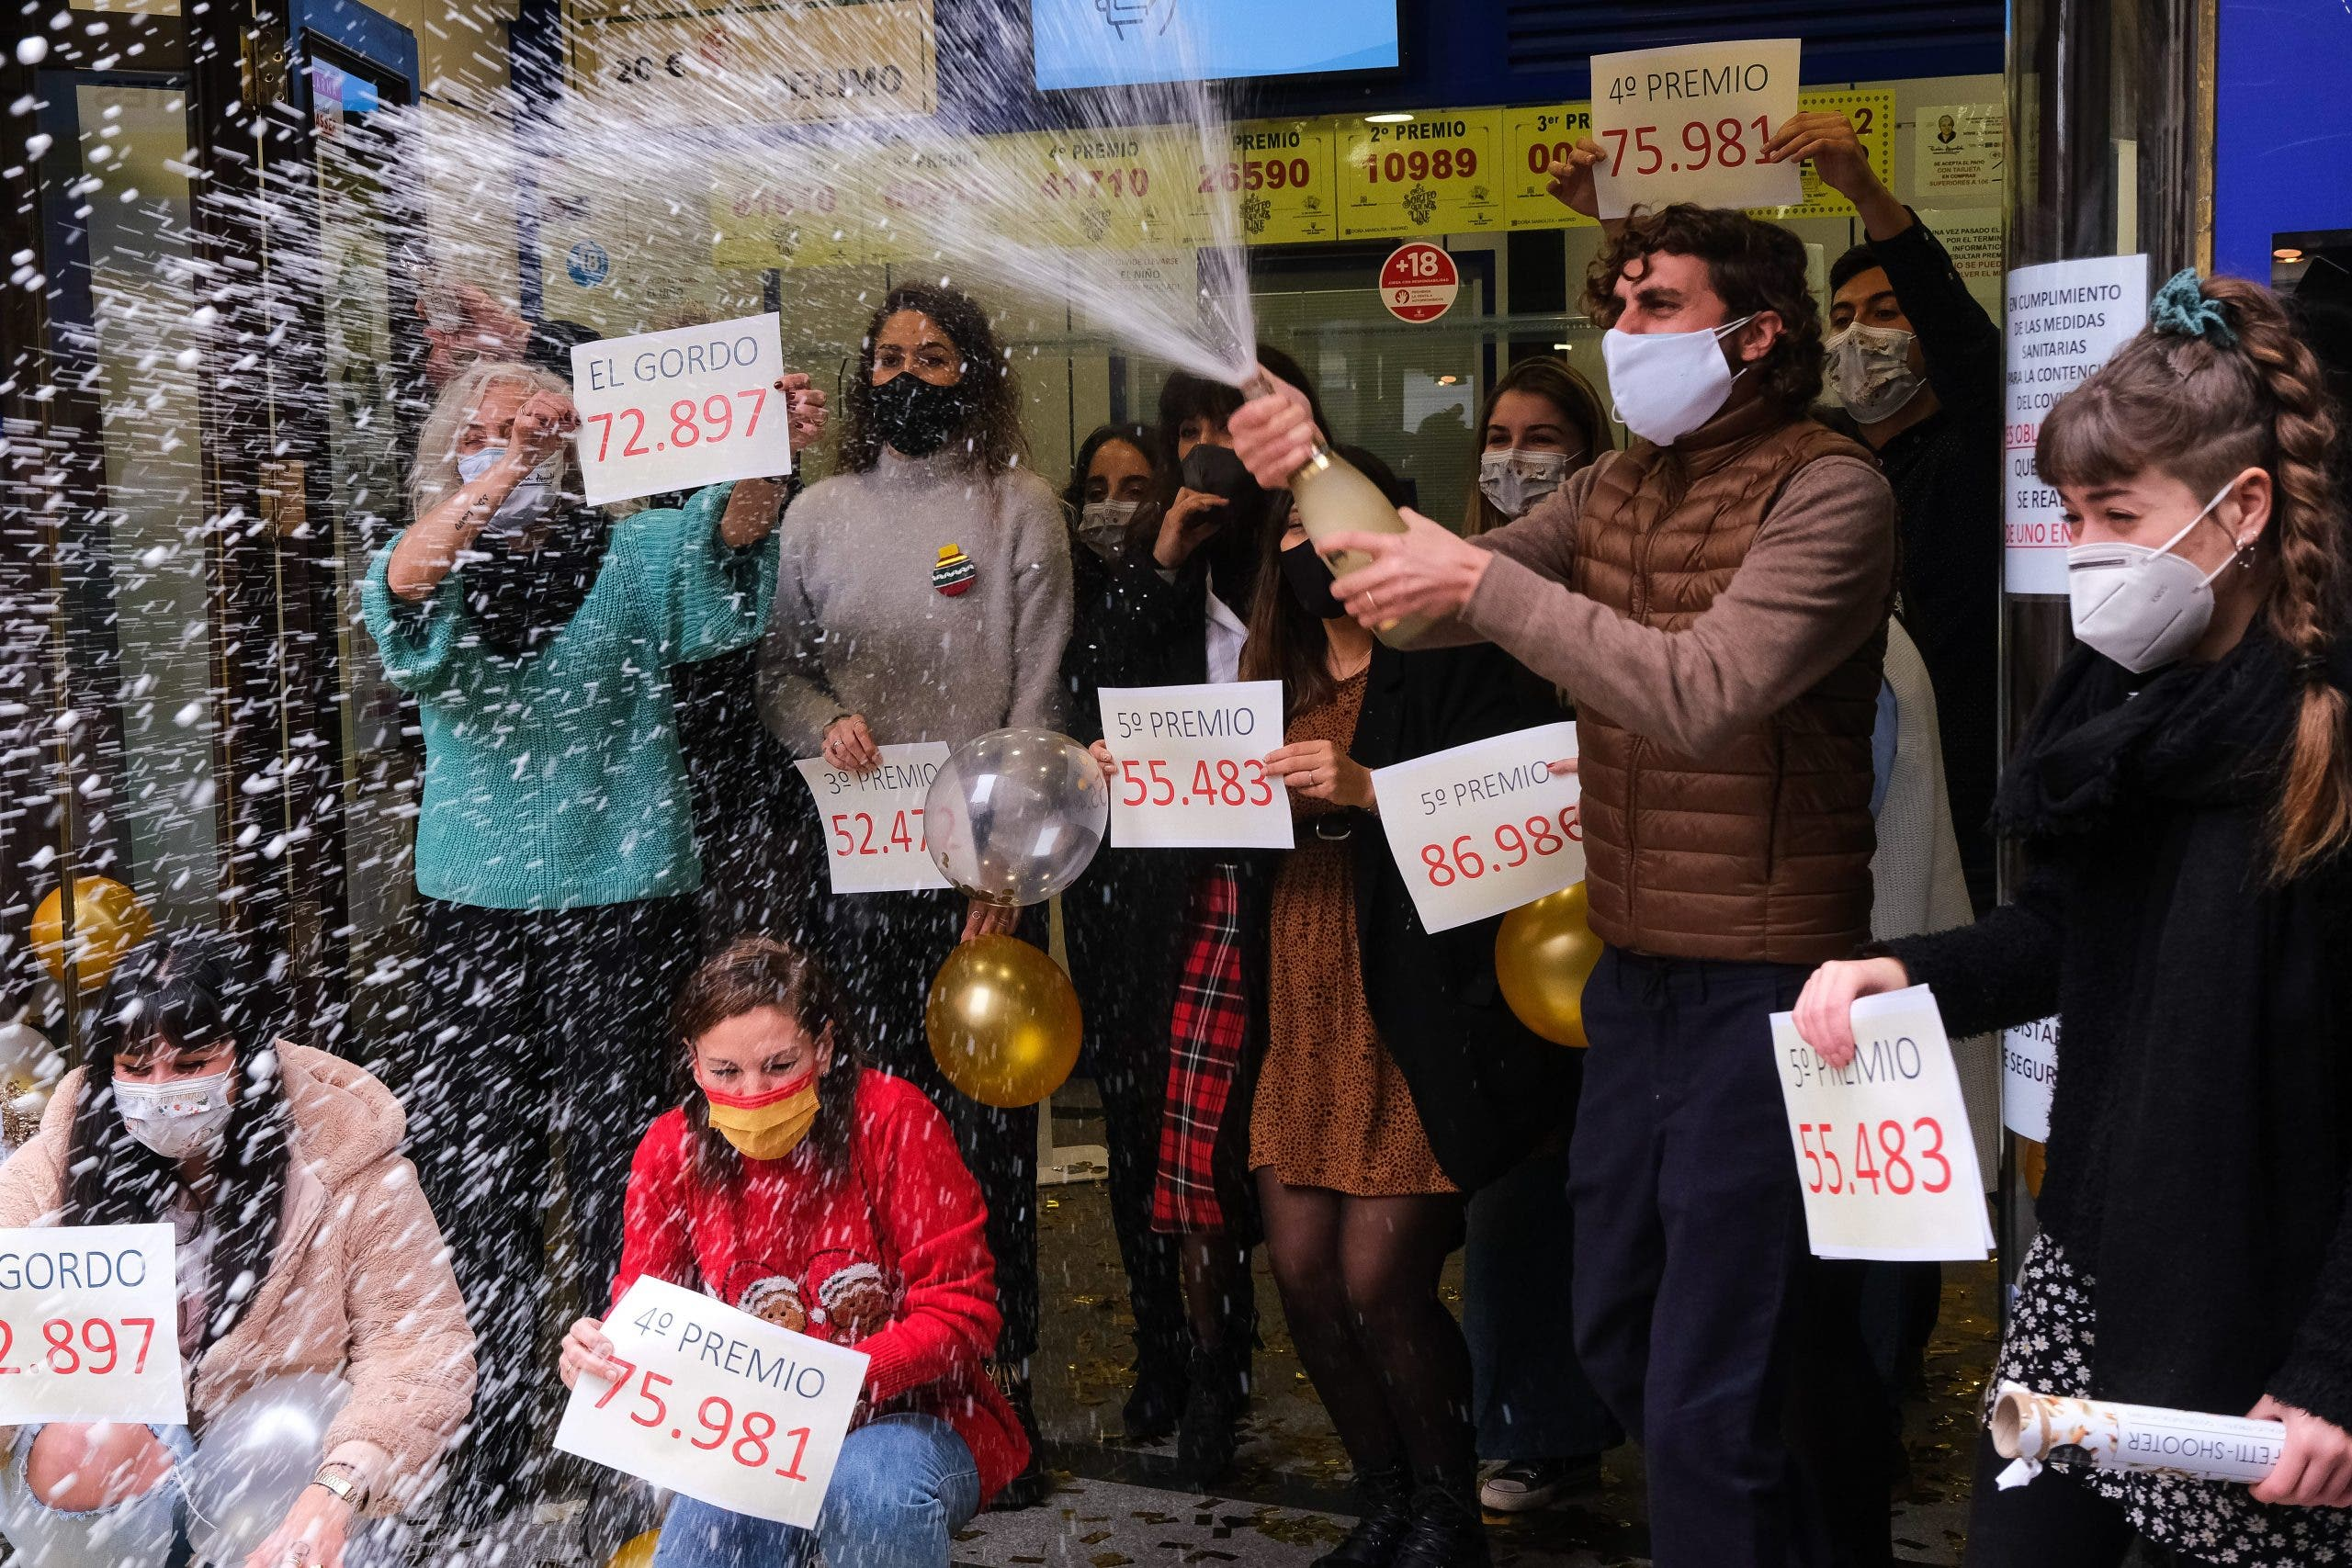 Lottery sellers show the winning numbers on Tuesday